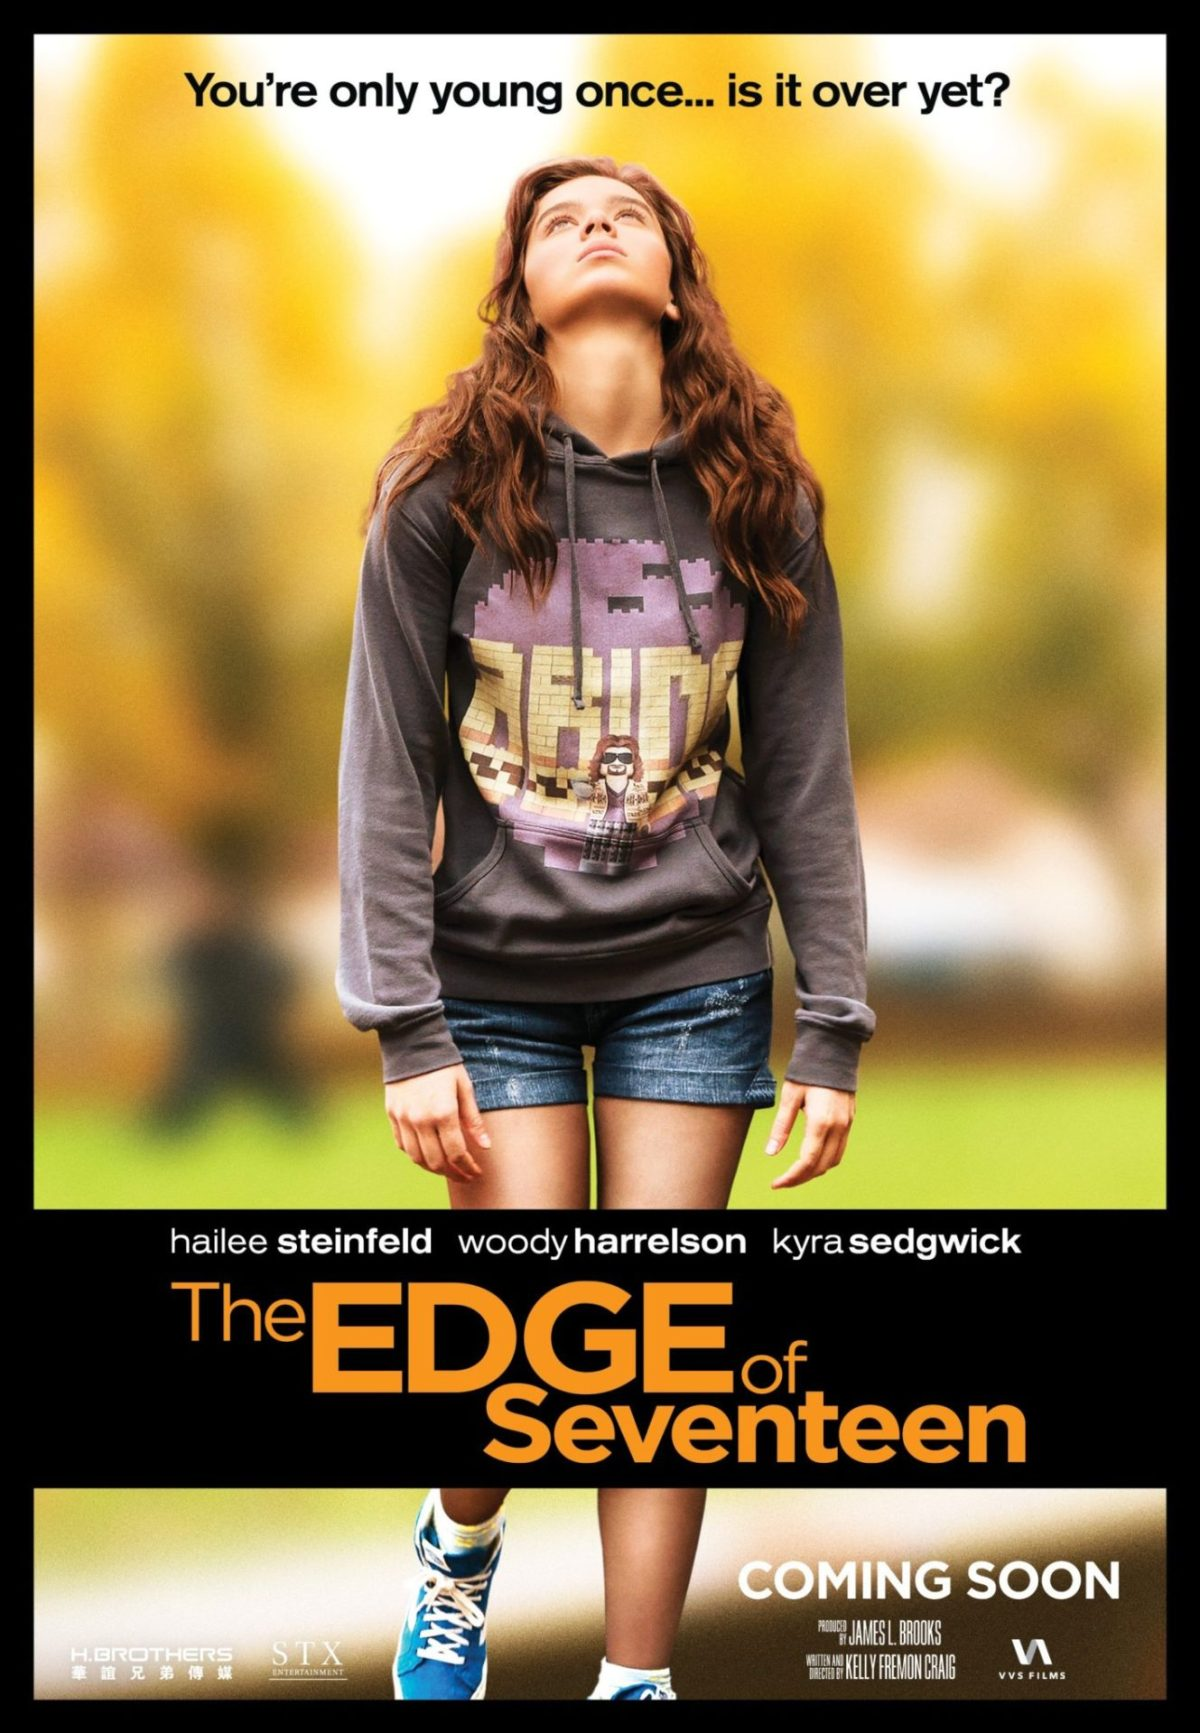 theatrical_poster_-_the_edge_of_seventeen